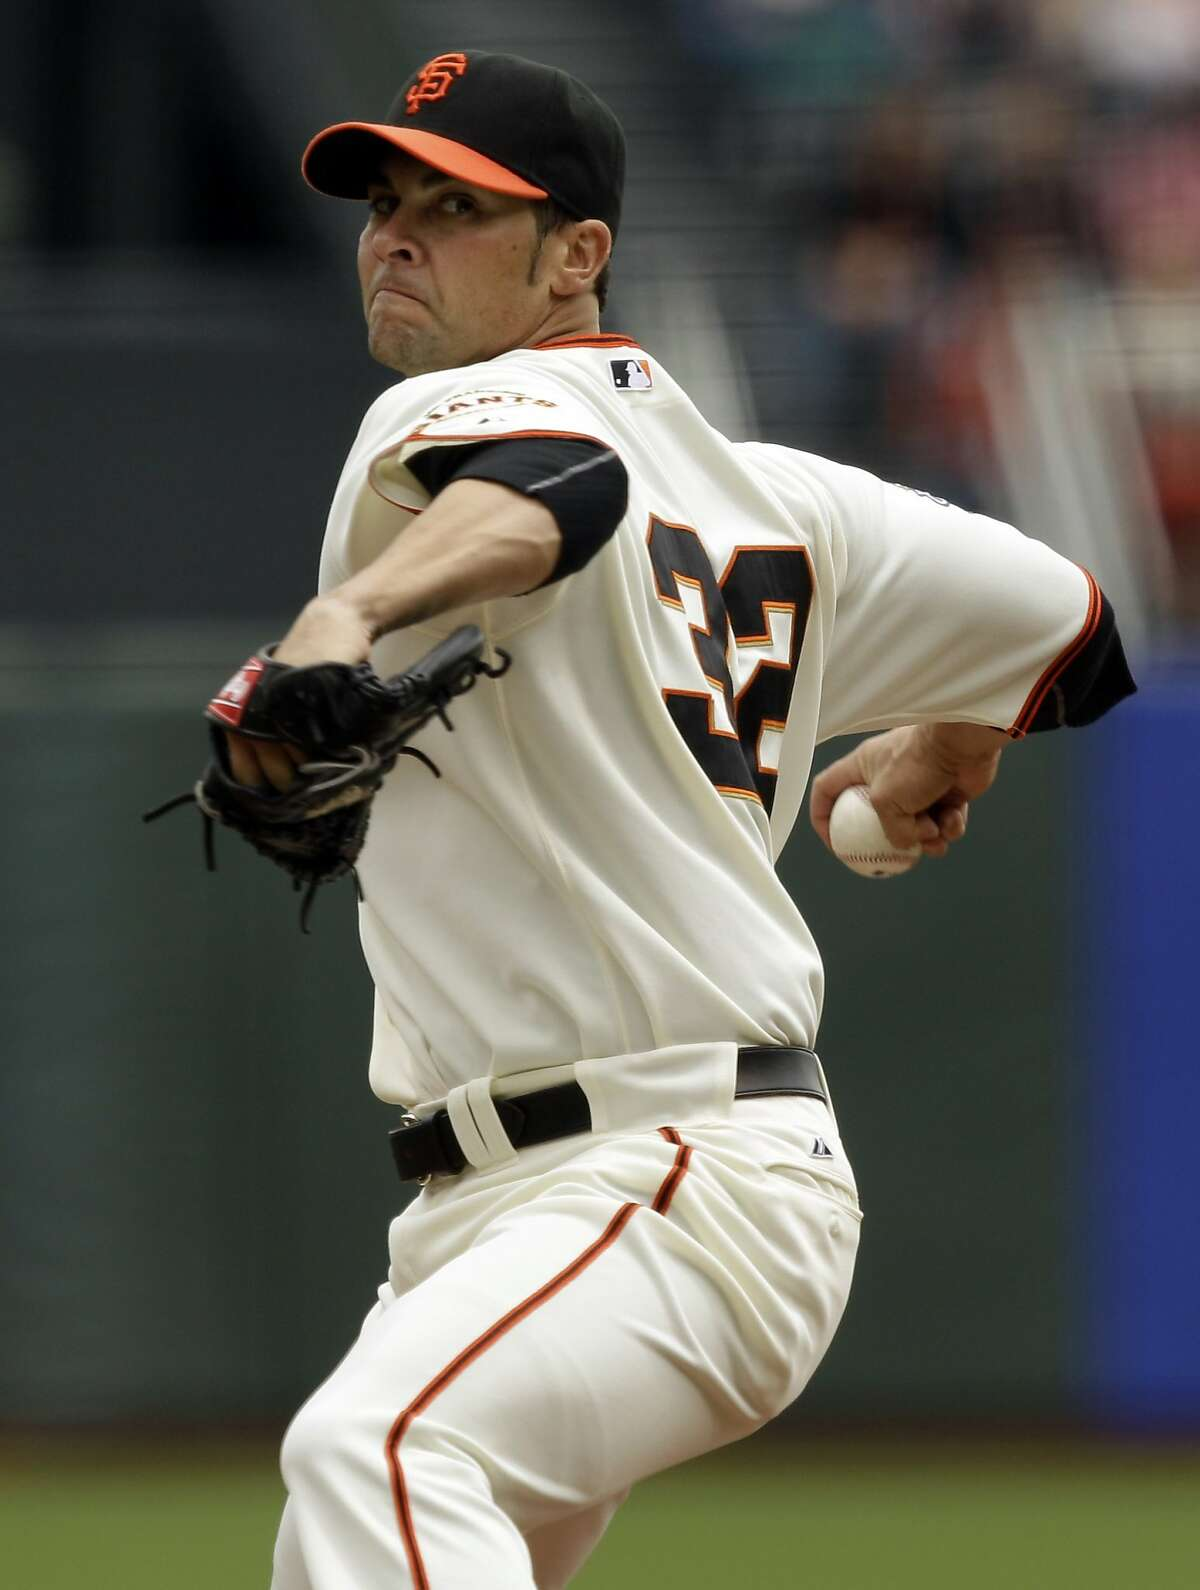 San Francisco Giants pitcher Ryan Vogelsong (32) throws to the Colorado Rockies during the first inning of a baseball game in San Francisco, Sunday, June 5, 2011. ~~